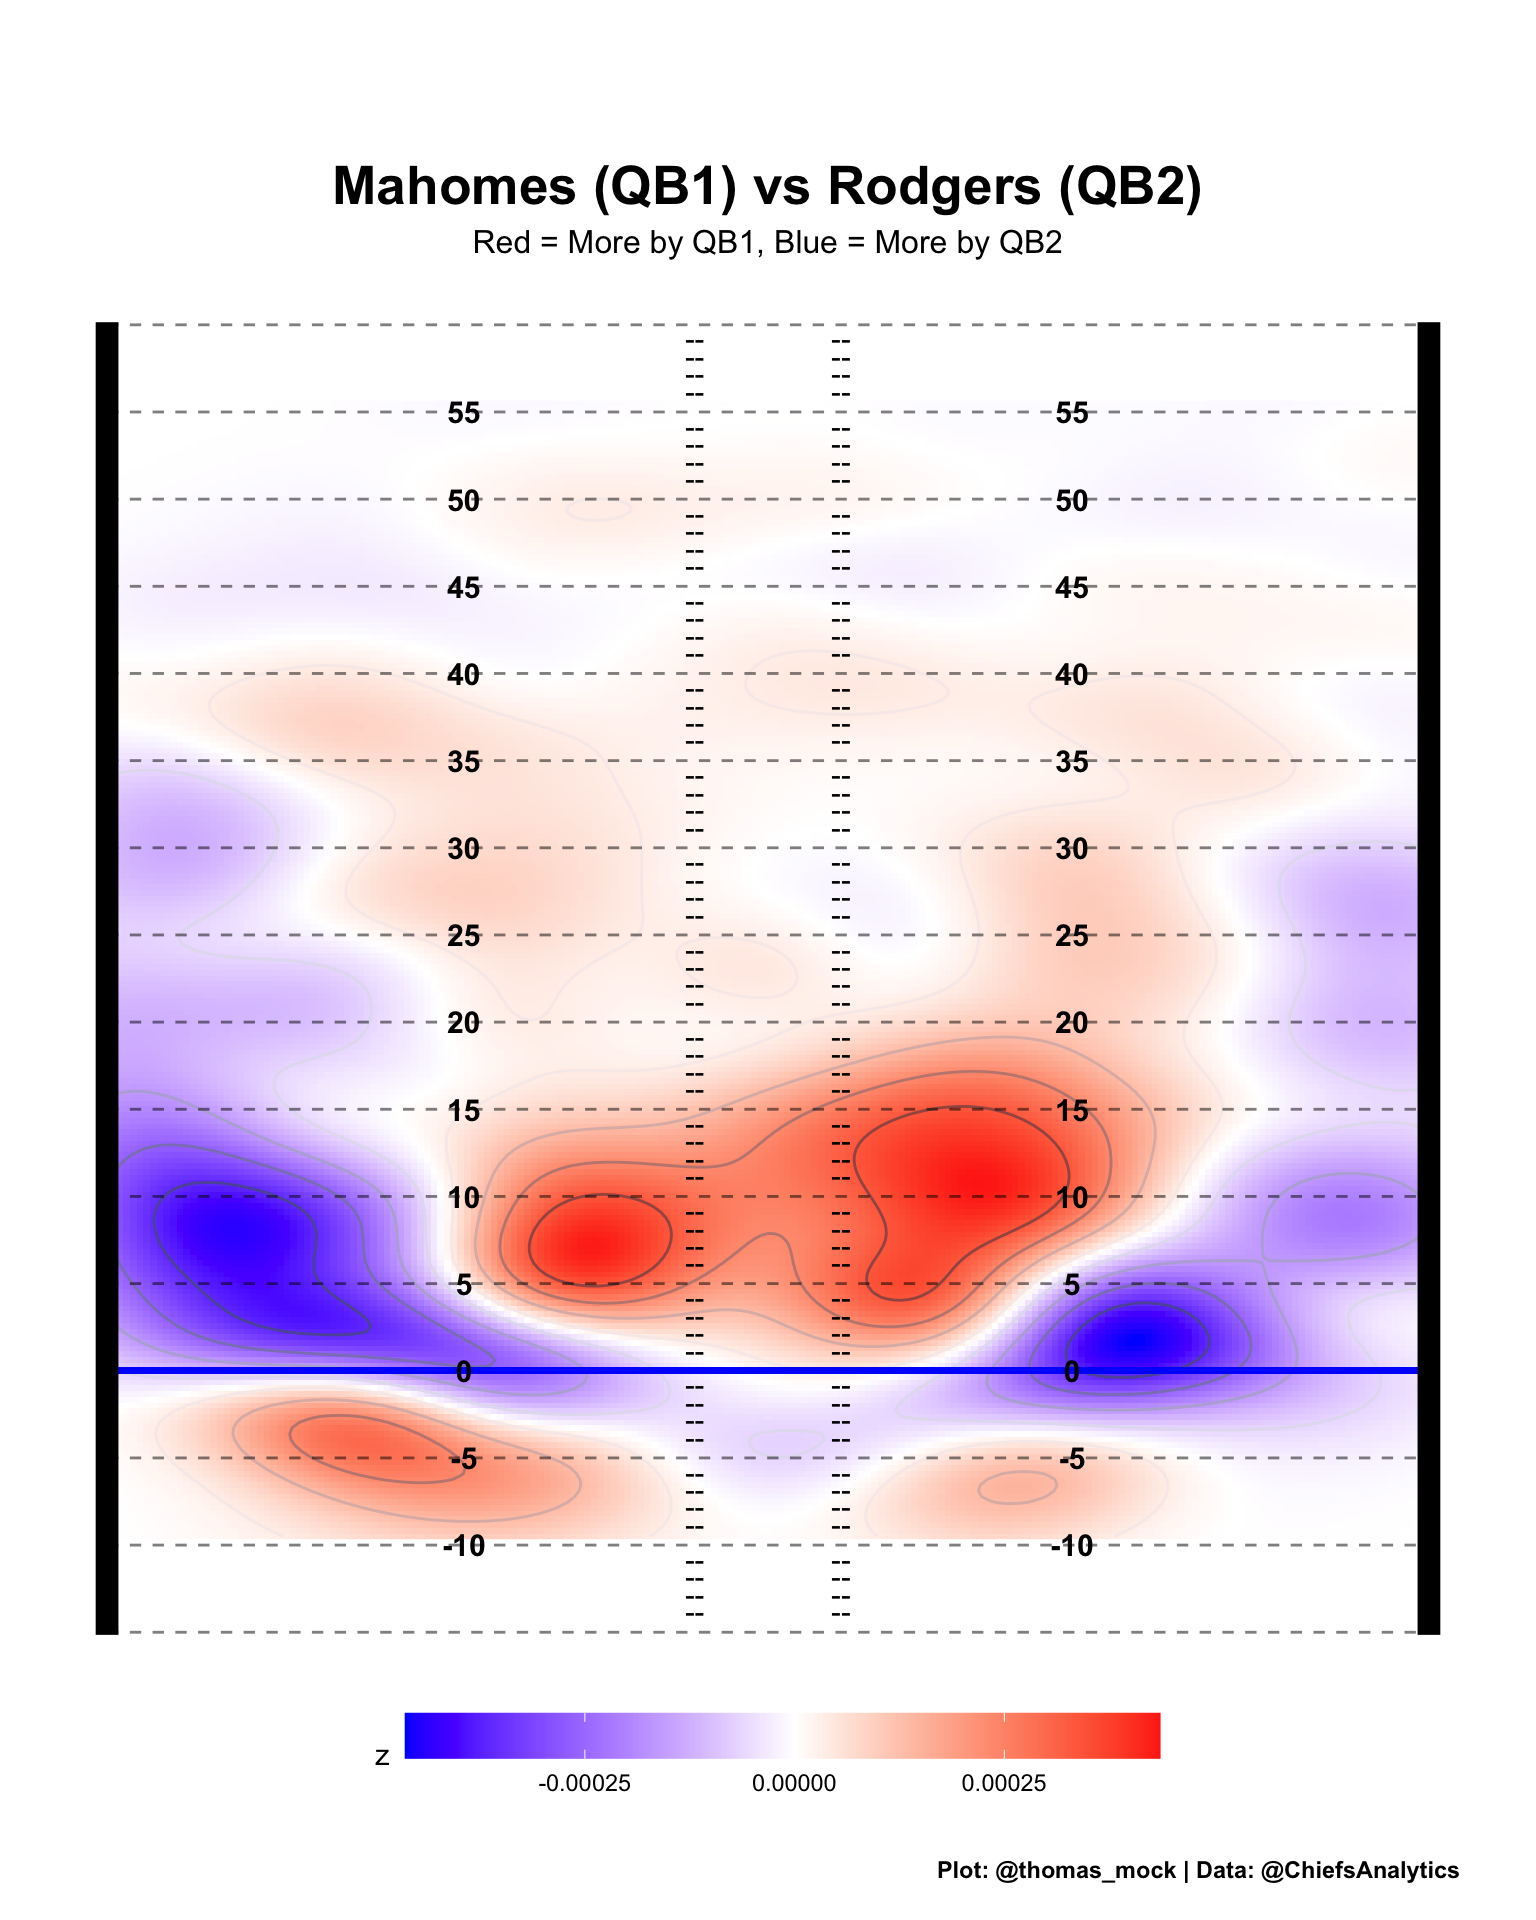 heatmap contouring the difference in the passing profiles of Mahomes vs Roders in American football